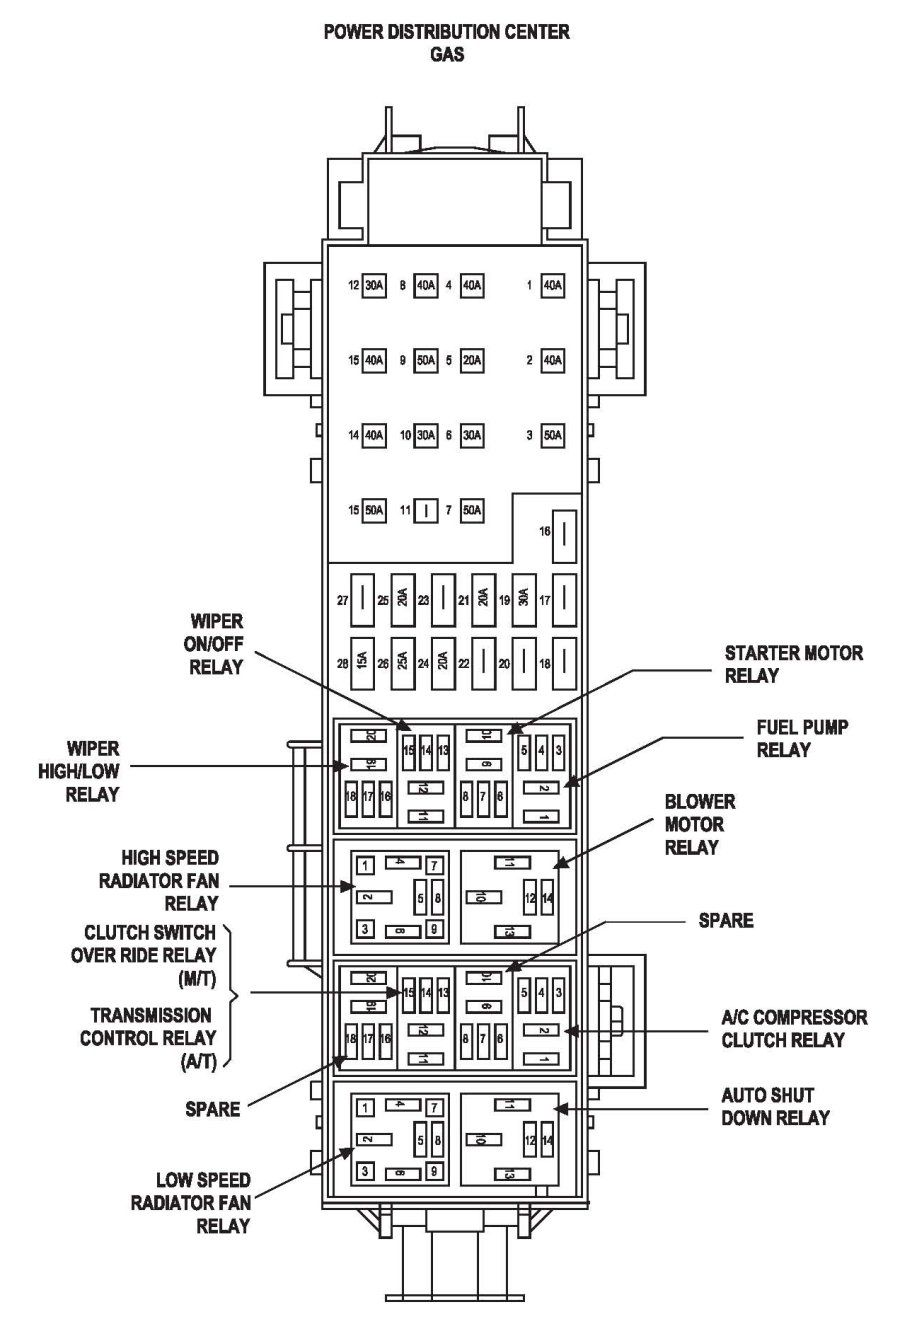 jeep liberty fuse box diagram image details jeep liberty rh pinterest com 2008 Jeep Liberty Wiring-Diagram 2004 Jeep Liberty Wiring-Diagram